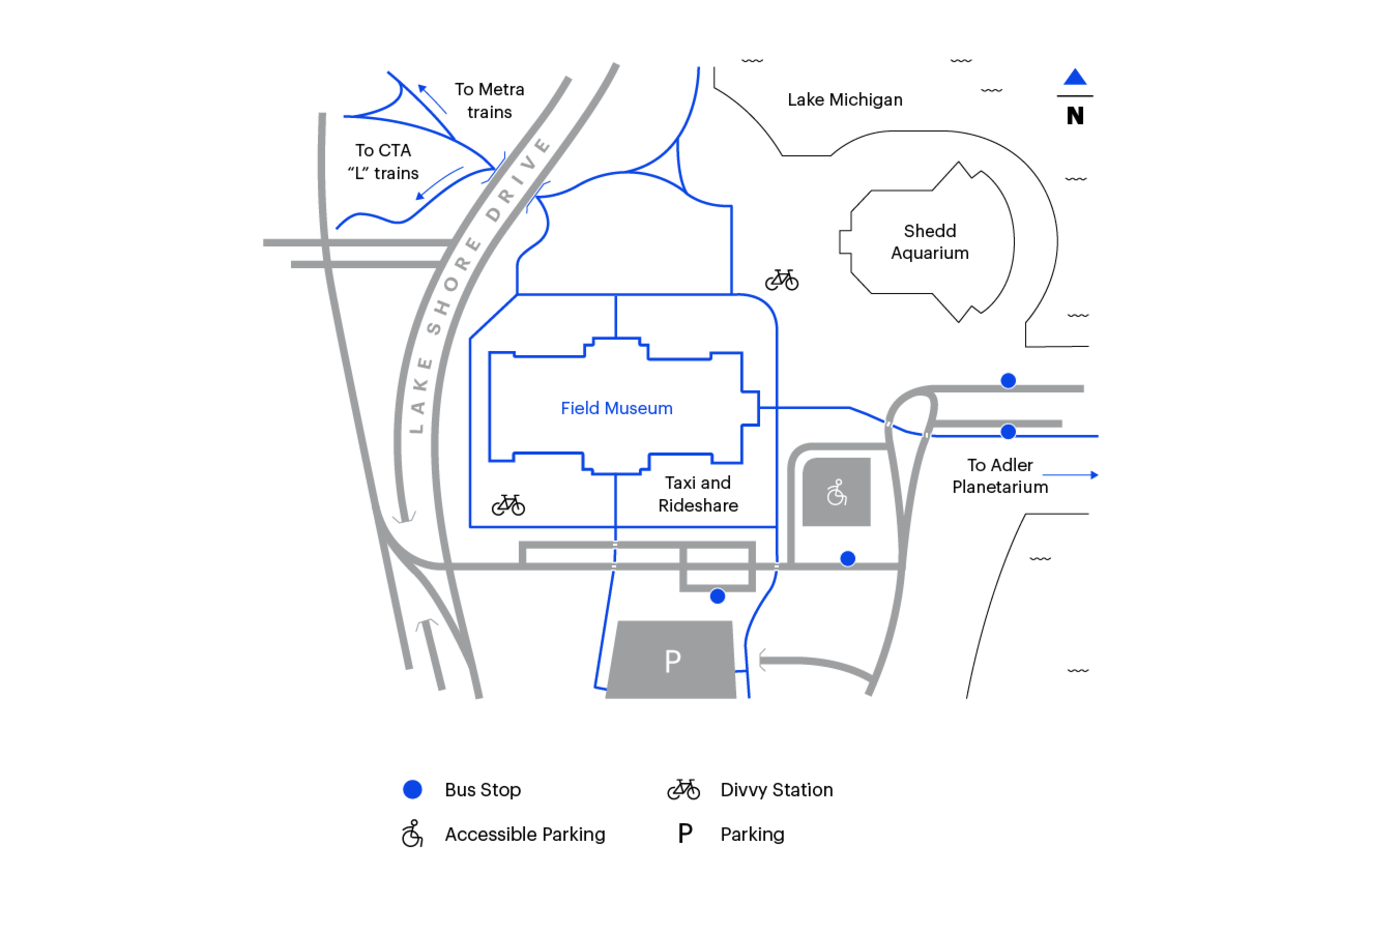 Map of Chicago's Museum Campus, showing the Field  Museum at the center and the Shedd Aquarium nearby. The map shows a place for taxi and rideshare pickups near the Museum's south entrance, and accessible parking on the southeast side of the Museum.